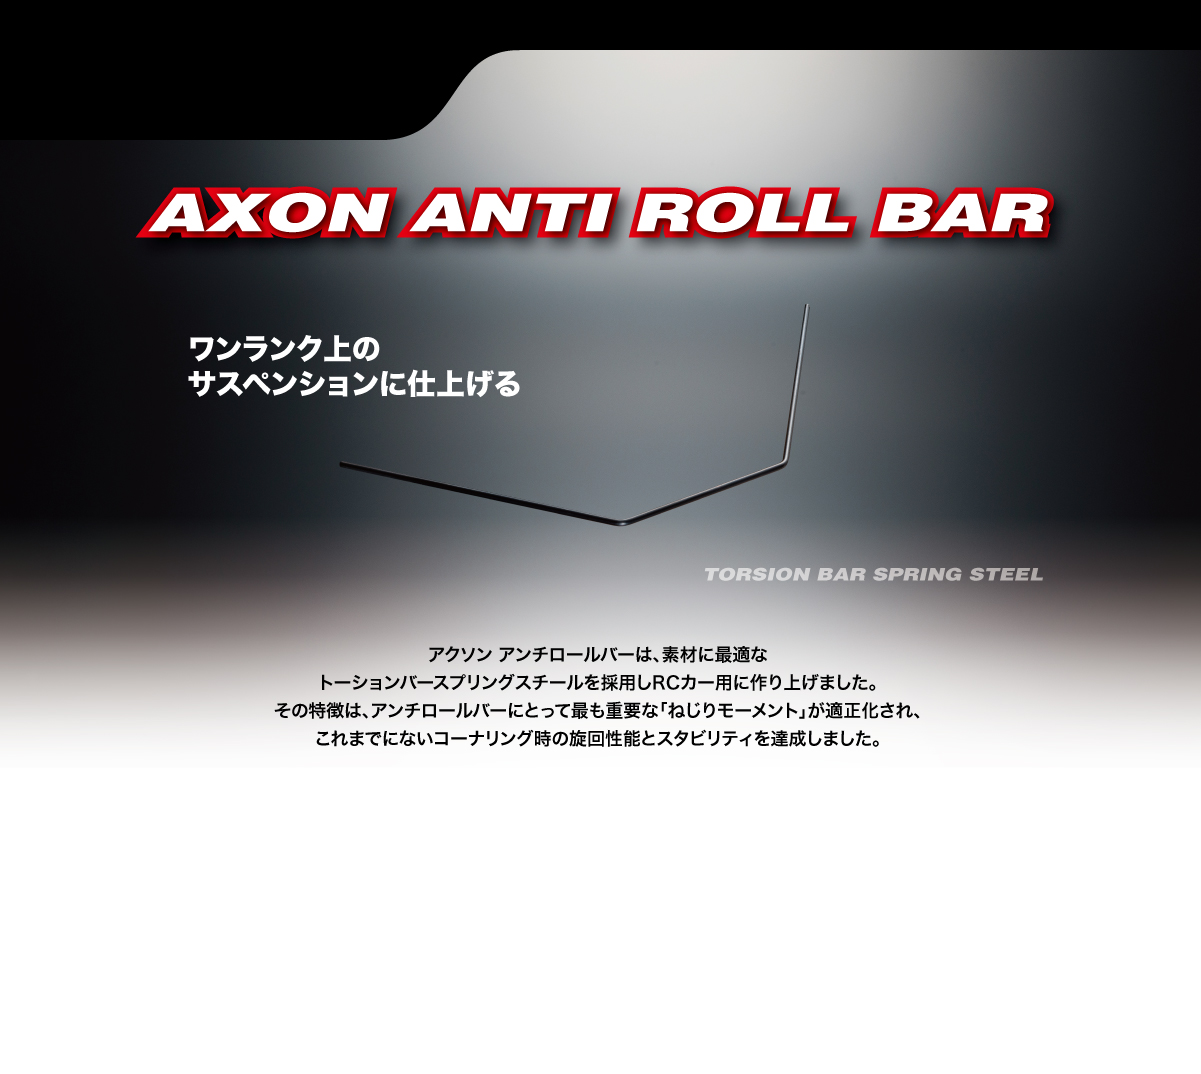 AXON AT-IF-014 AXON ANTI ROLL BAR IF14 FRONT 1.4mm